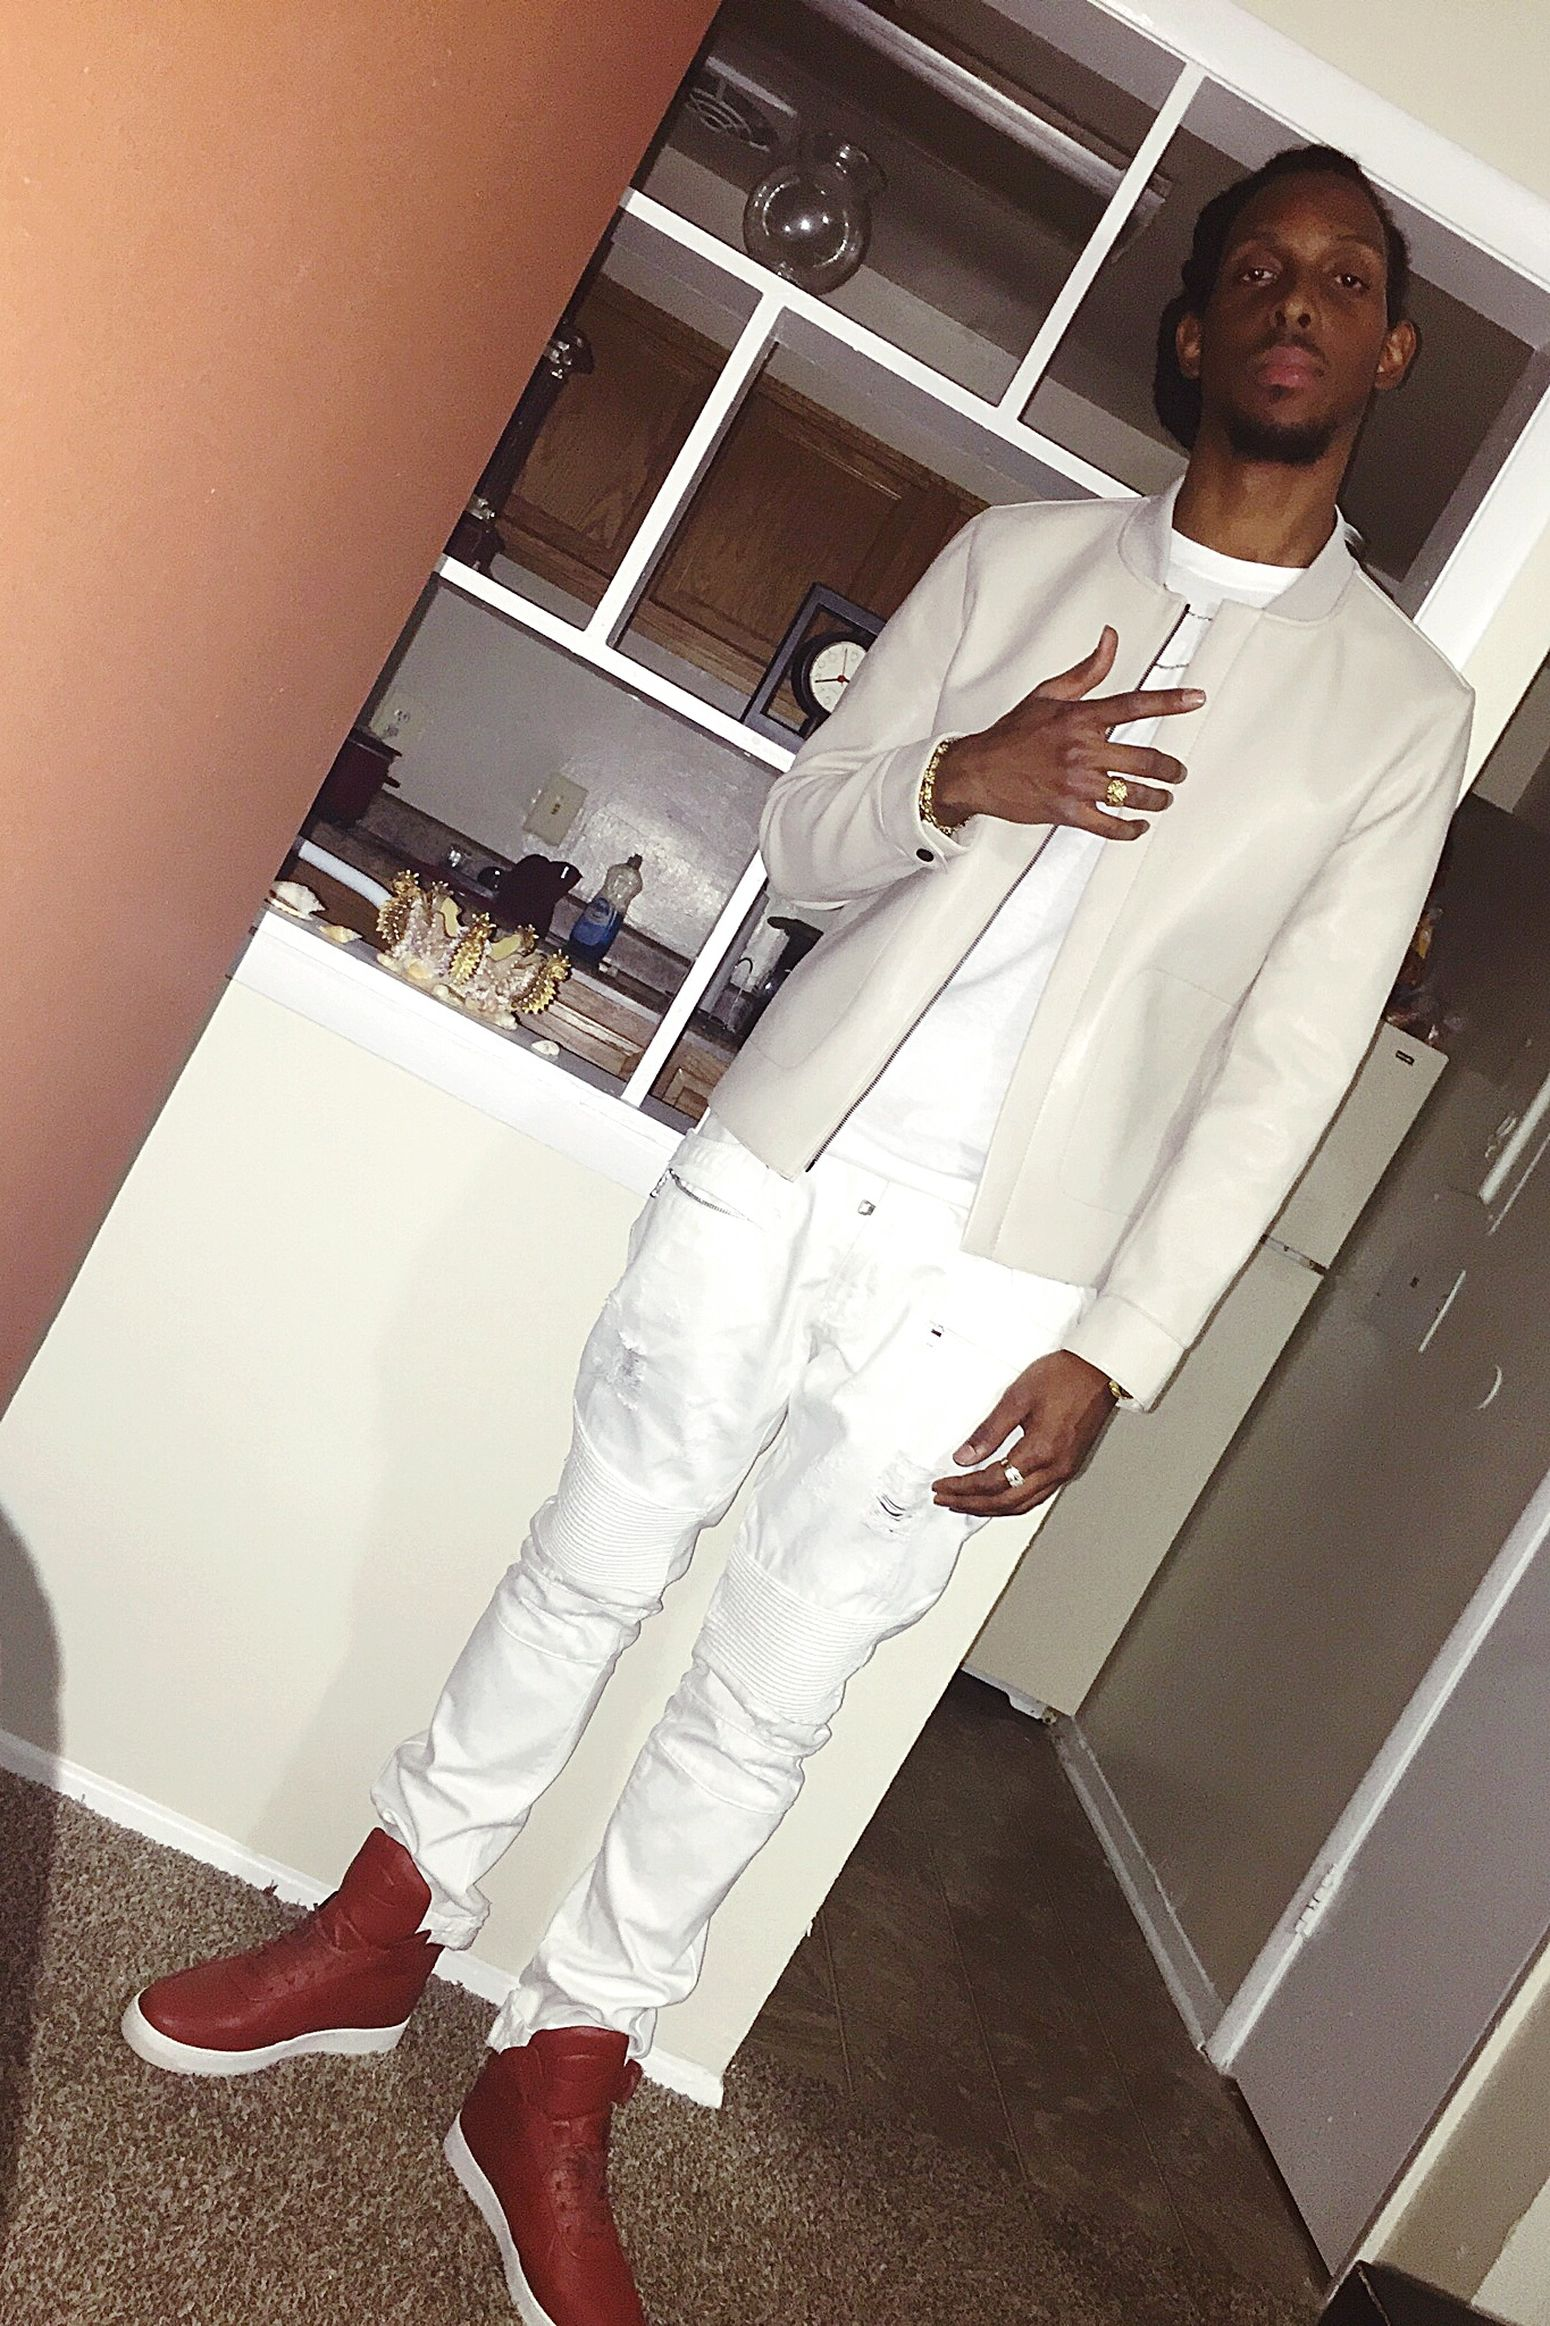 Bday Photo 👉 Zara Leather Jacket White Jeans Birthday Fit  VIP Lounge Justbeforetheclubs Hadfun.